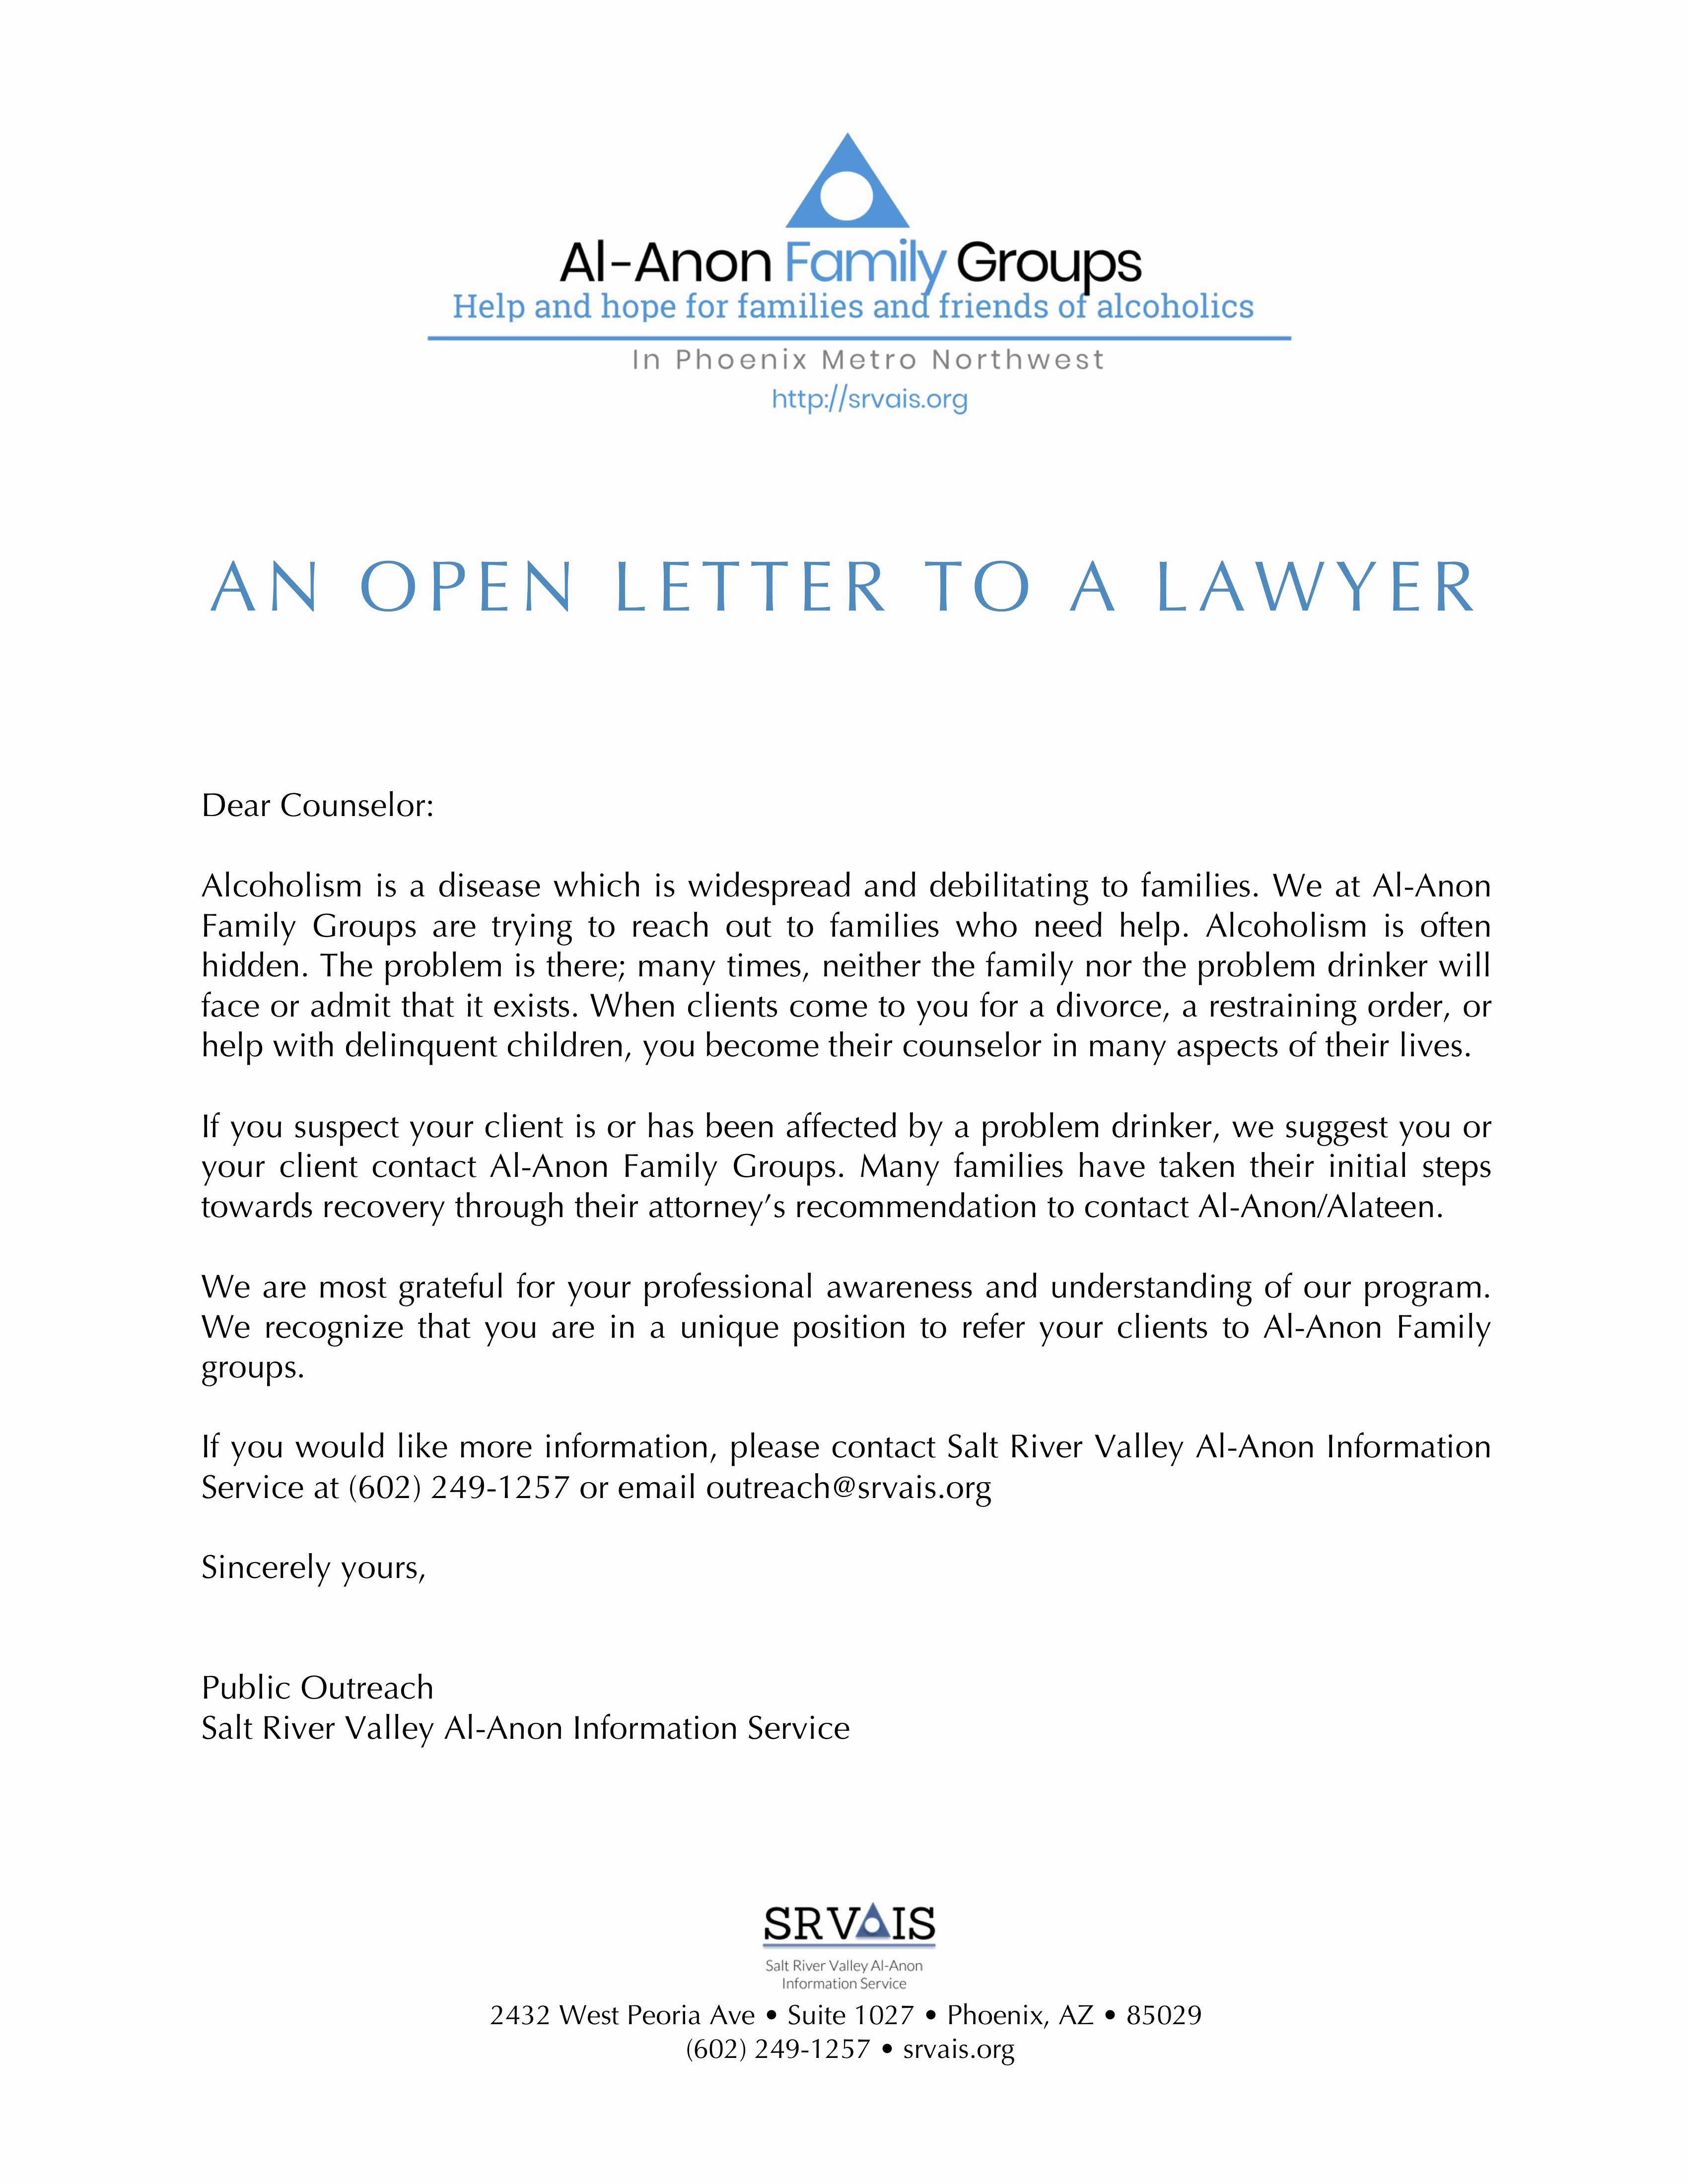 Attorney Letter Of Recommendation Best Of Open Letter to attorney – Salt River Valley Al Anon